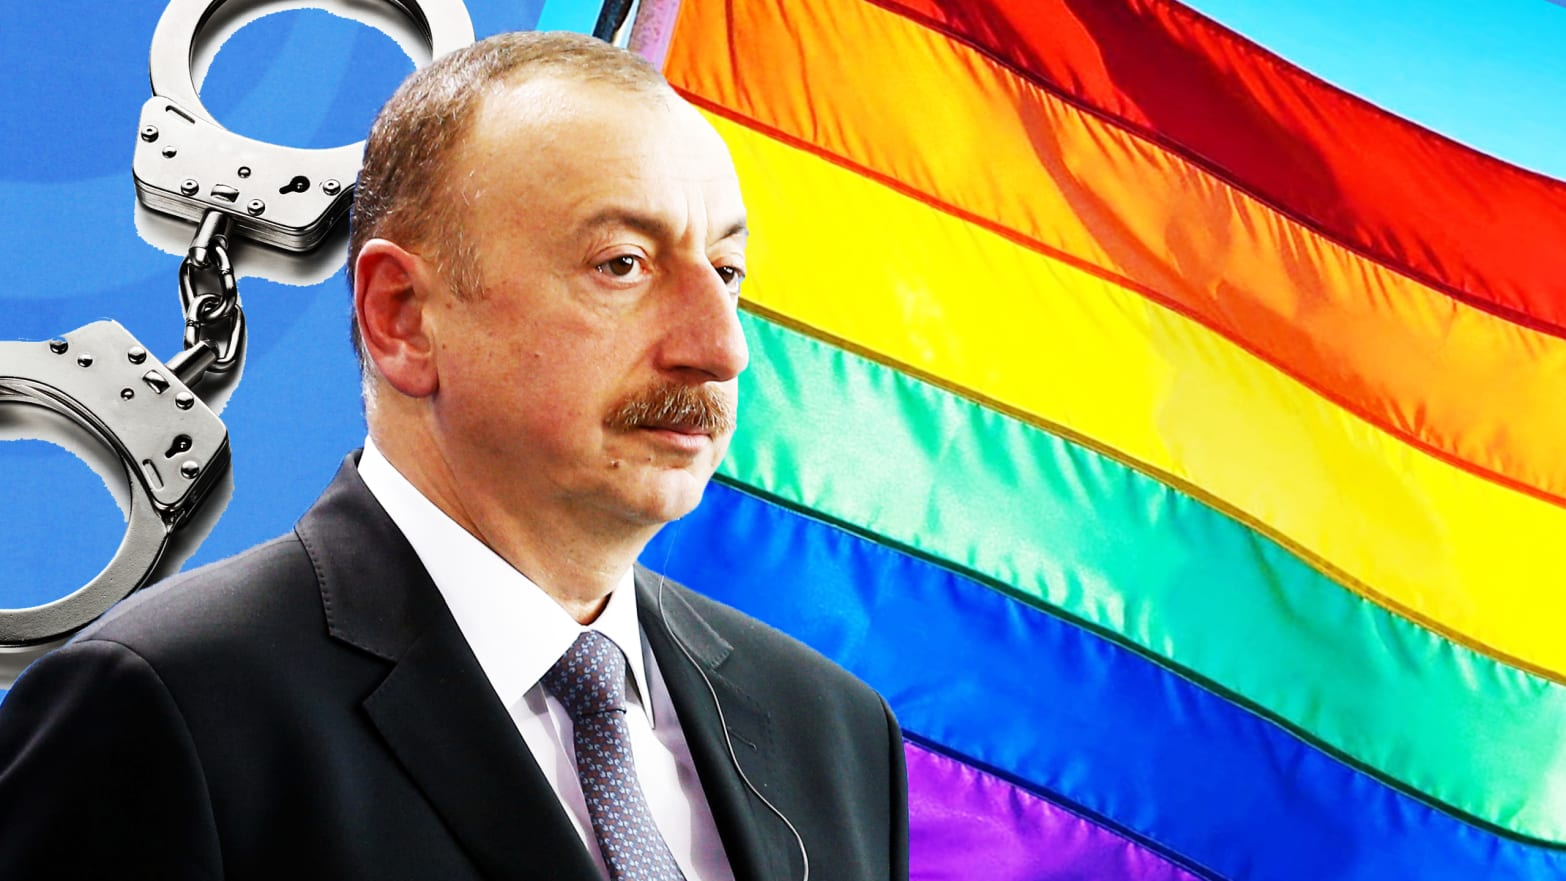 Inside the Frightening LGBTQ Crackdown in Azerbaijan